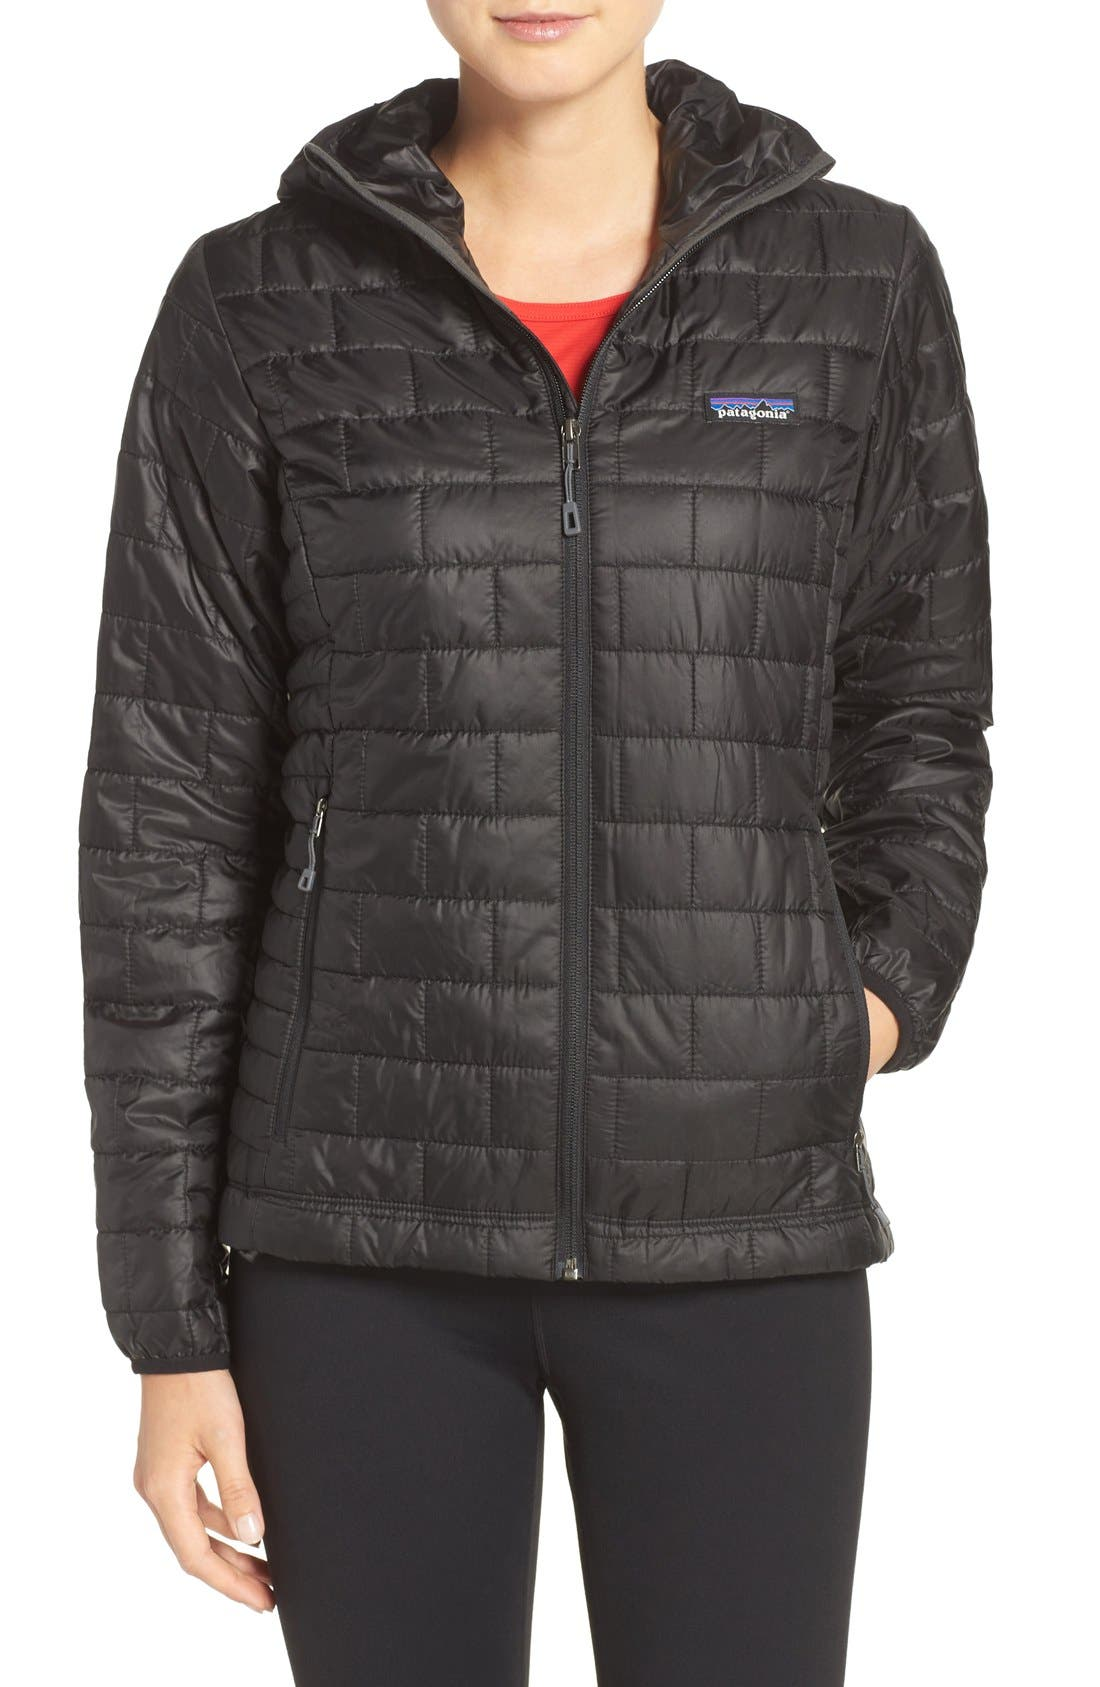 Patagonia Nano Puff Hooded Water Resistant Jacket, Black